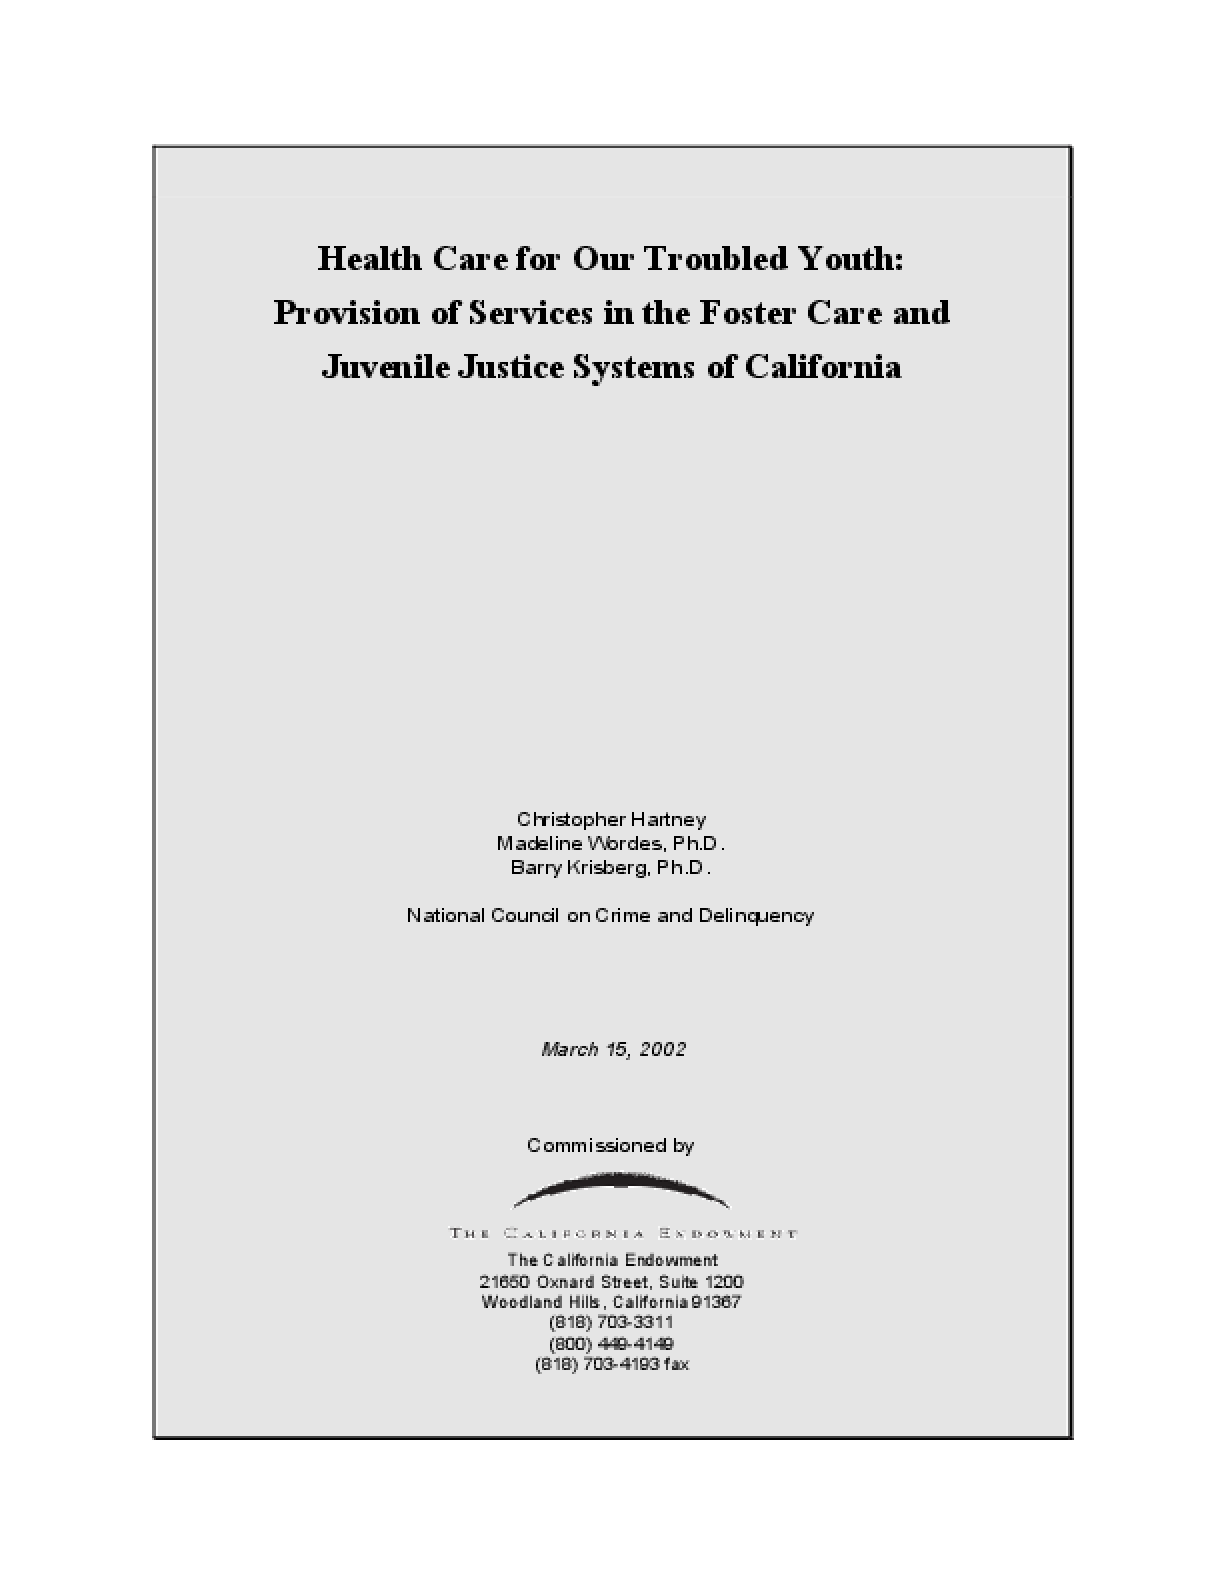 Health Care for Our Troubled Youth: Provision of Services in the Foster Care and Juvenile Justice Systems of California